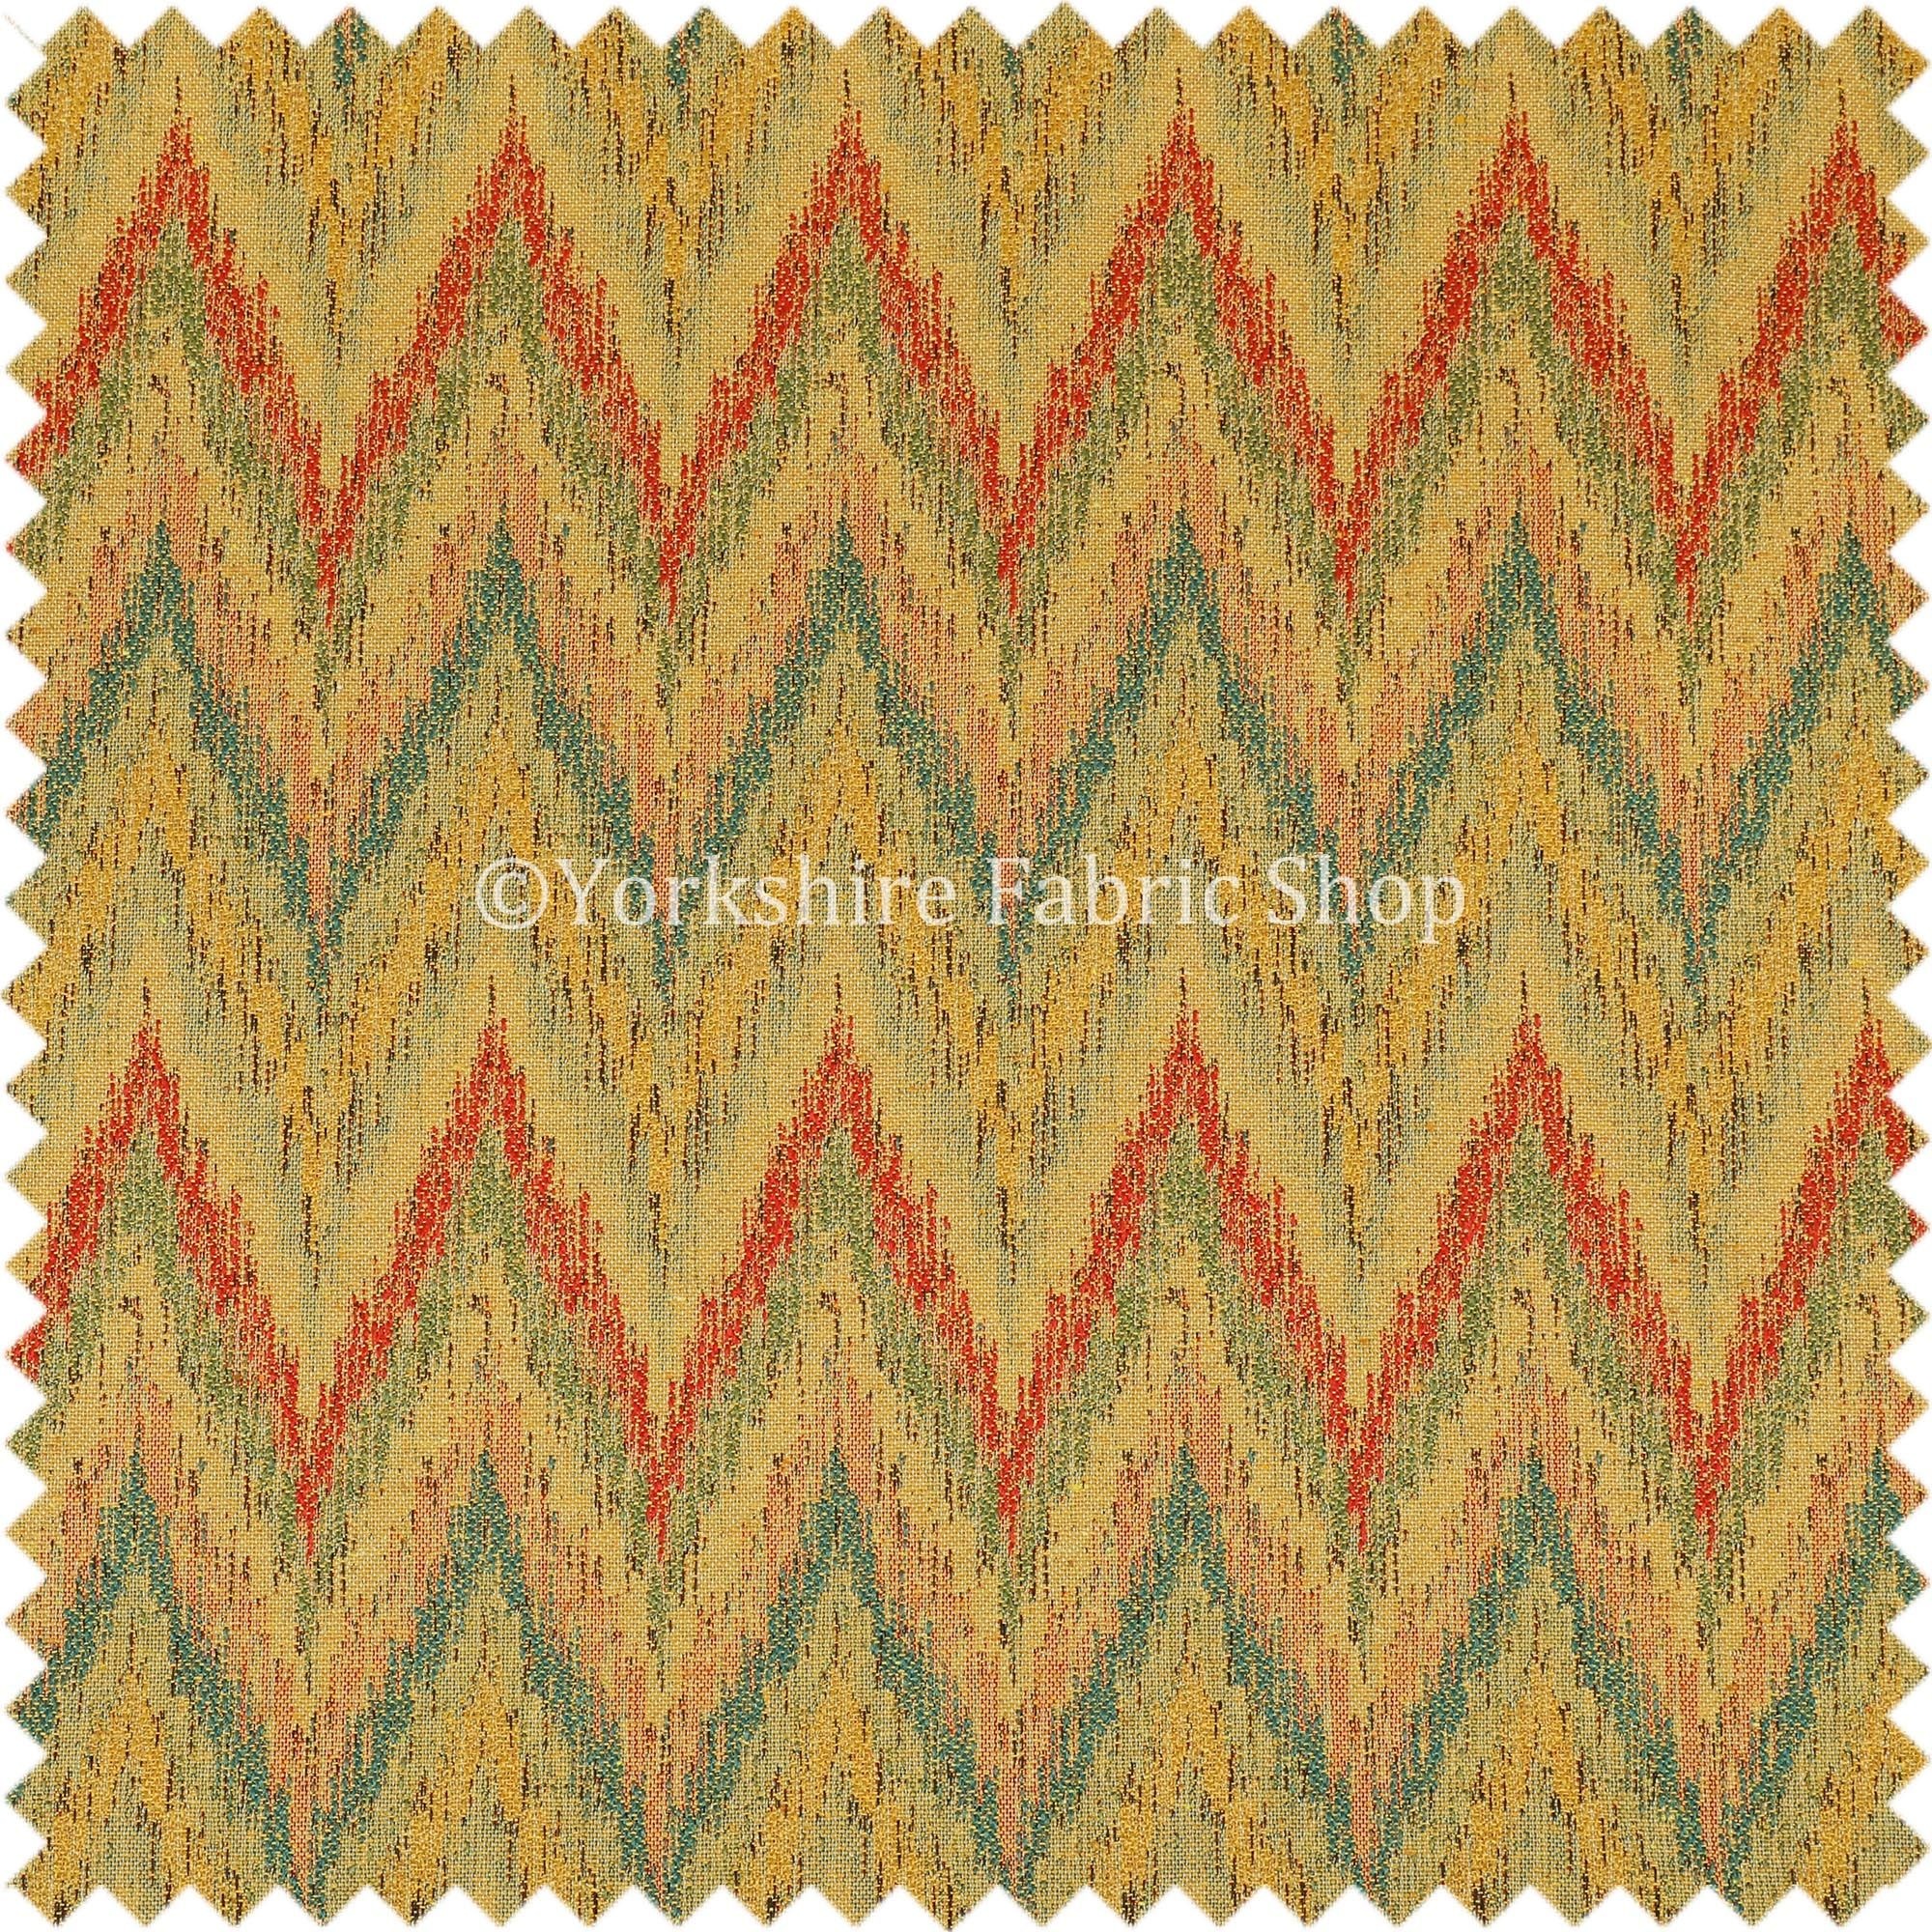 Chevron Striped Chenille Red Green Orange Yellow Upholstery